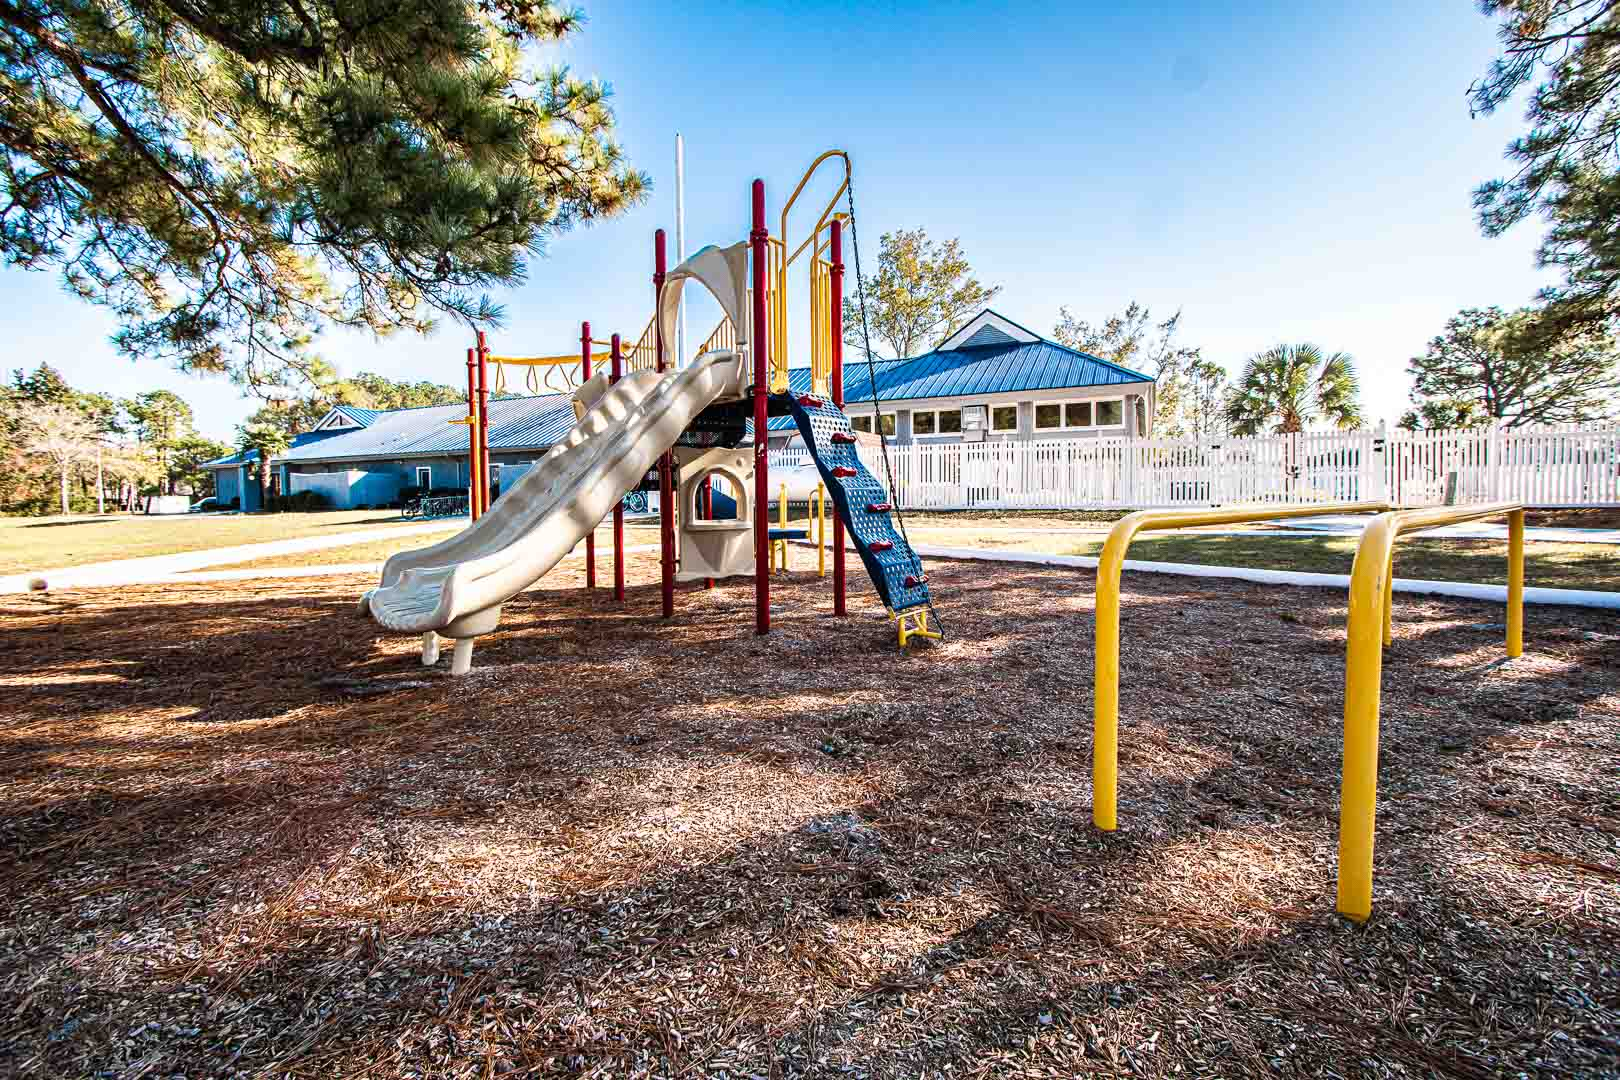 An outdoor children's playground at VRI's Sandcastle Cove in New Bern, North Carolina.